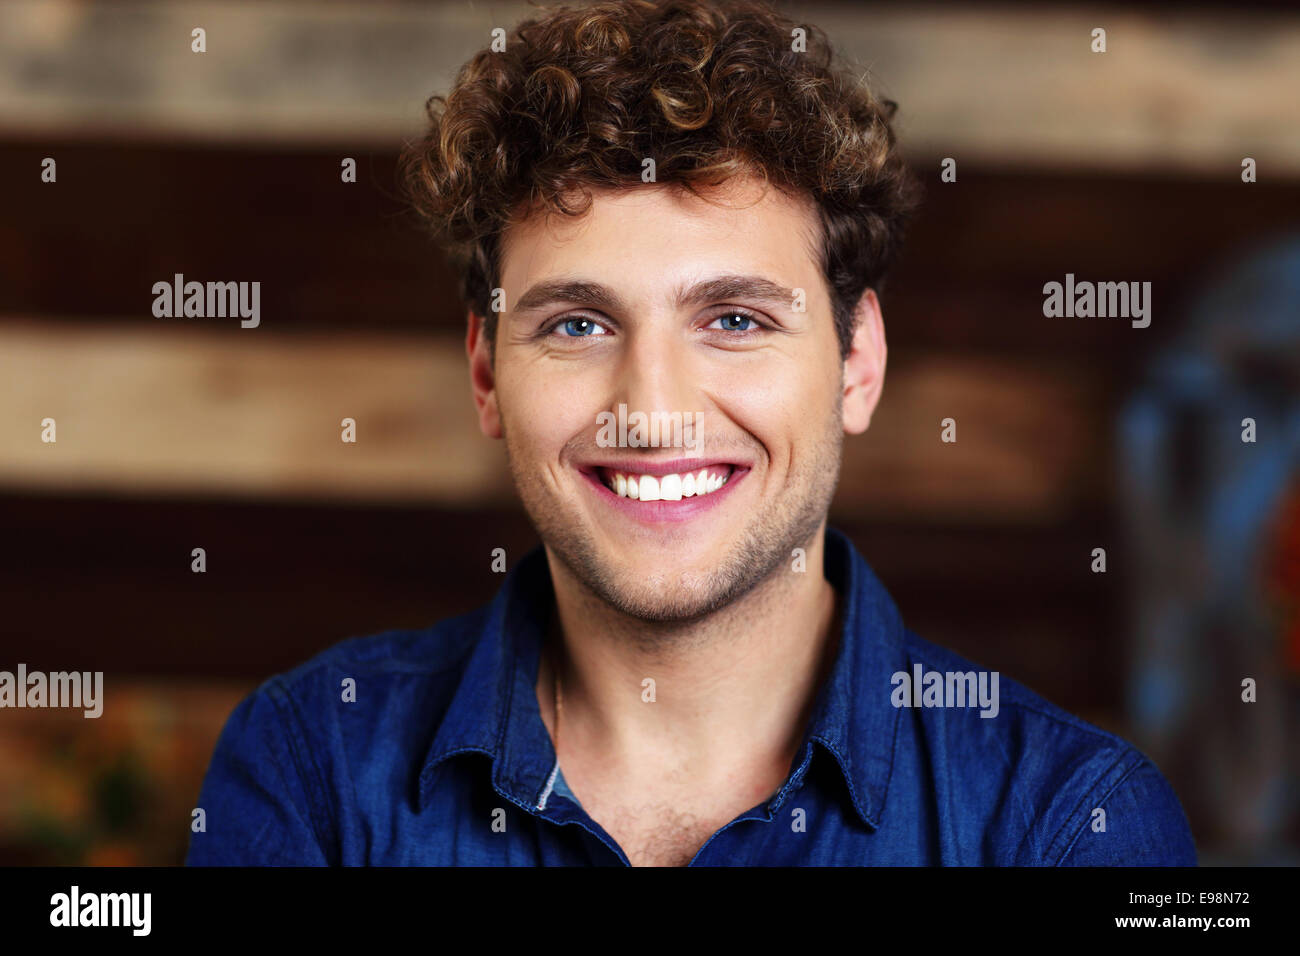 Portrait of a smiling handsome man with curly hair Photo Stock